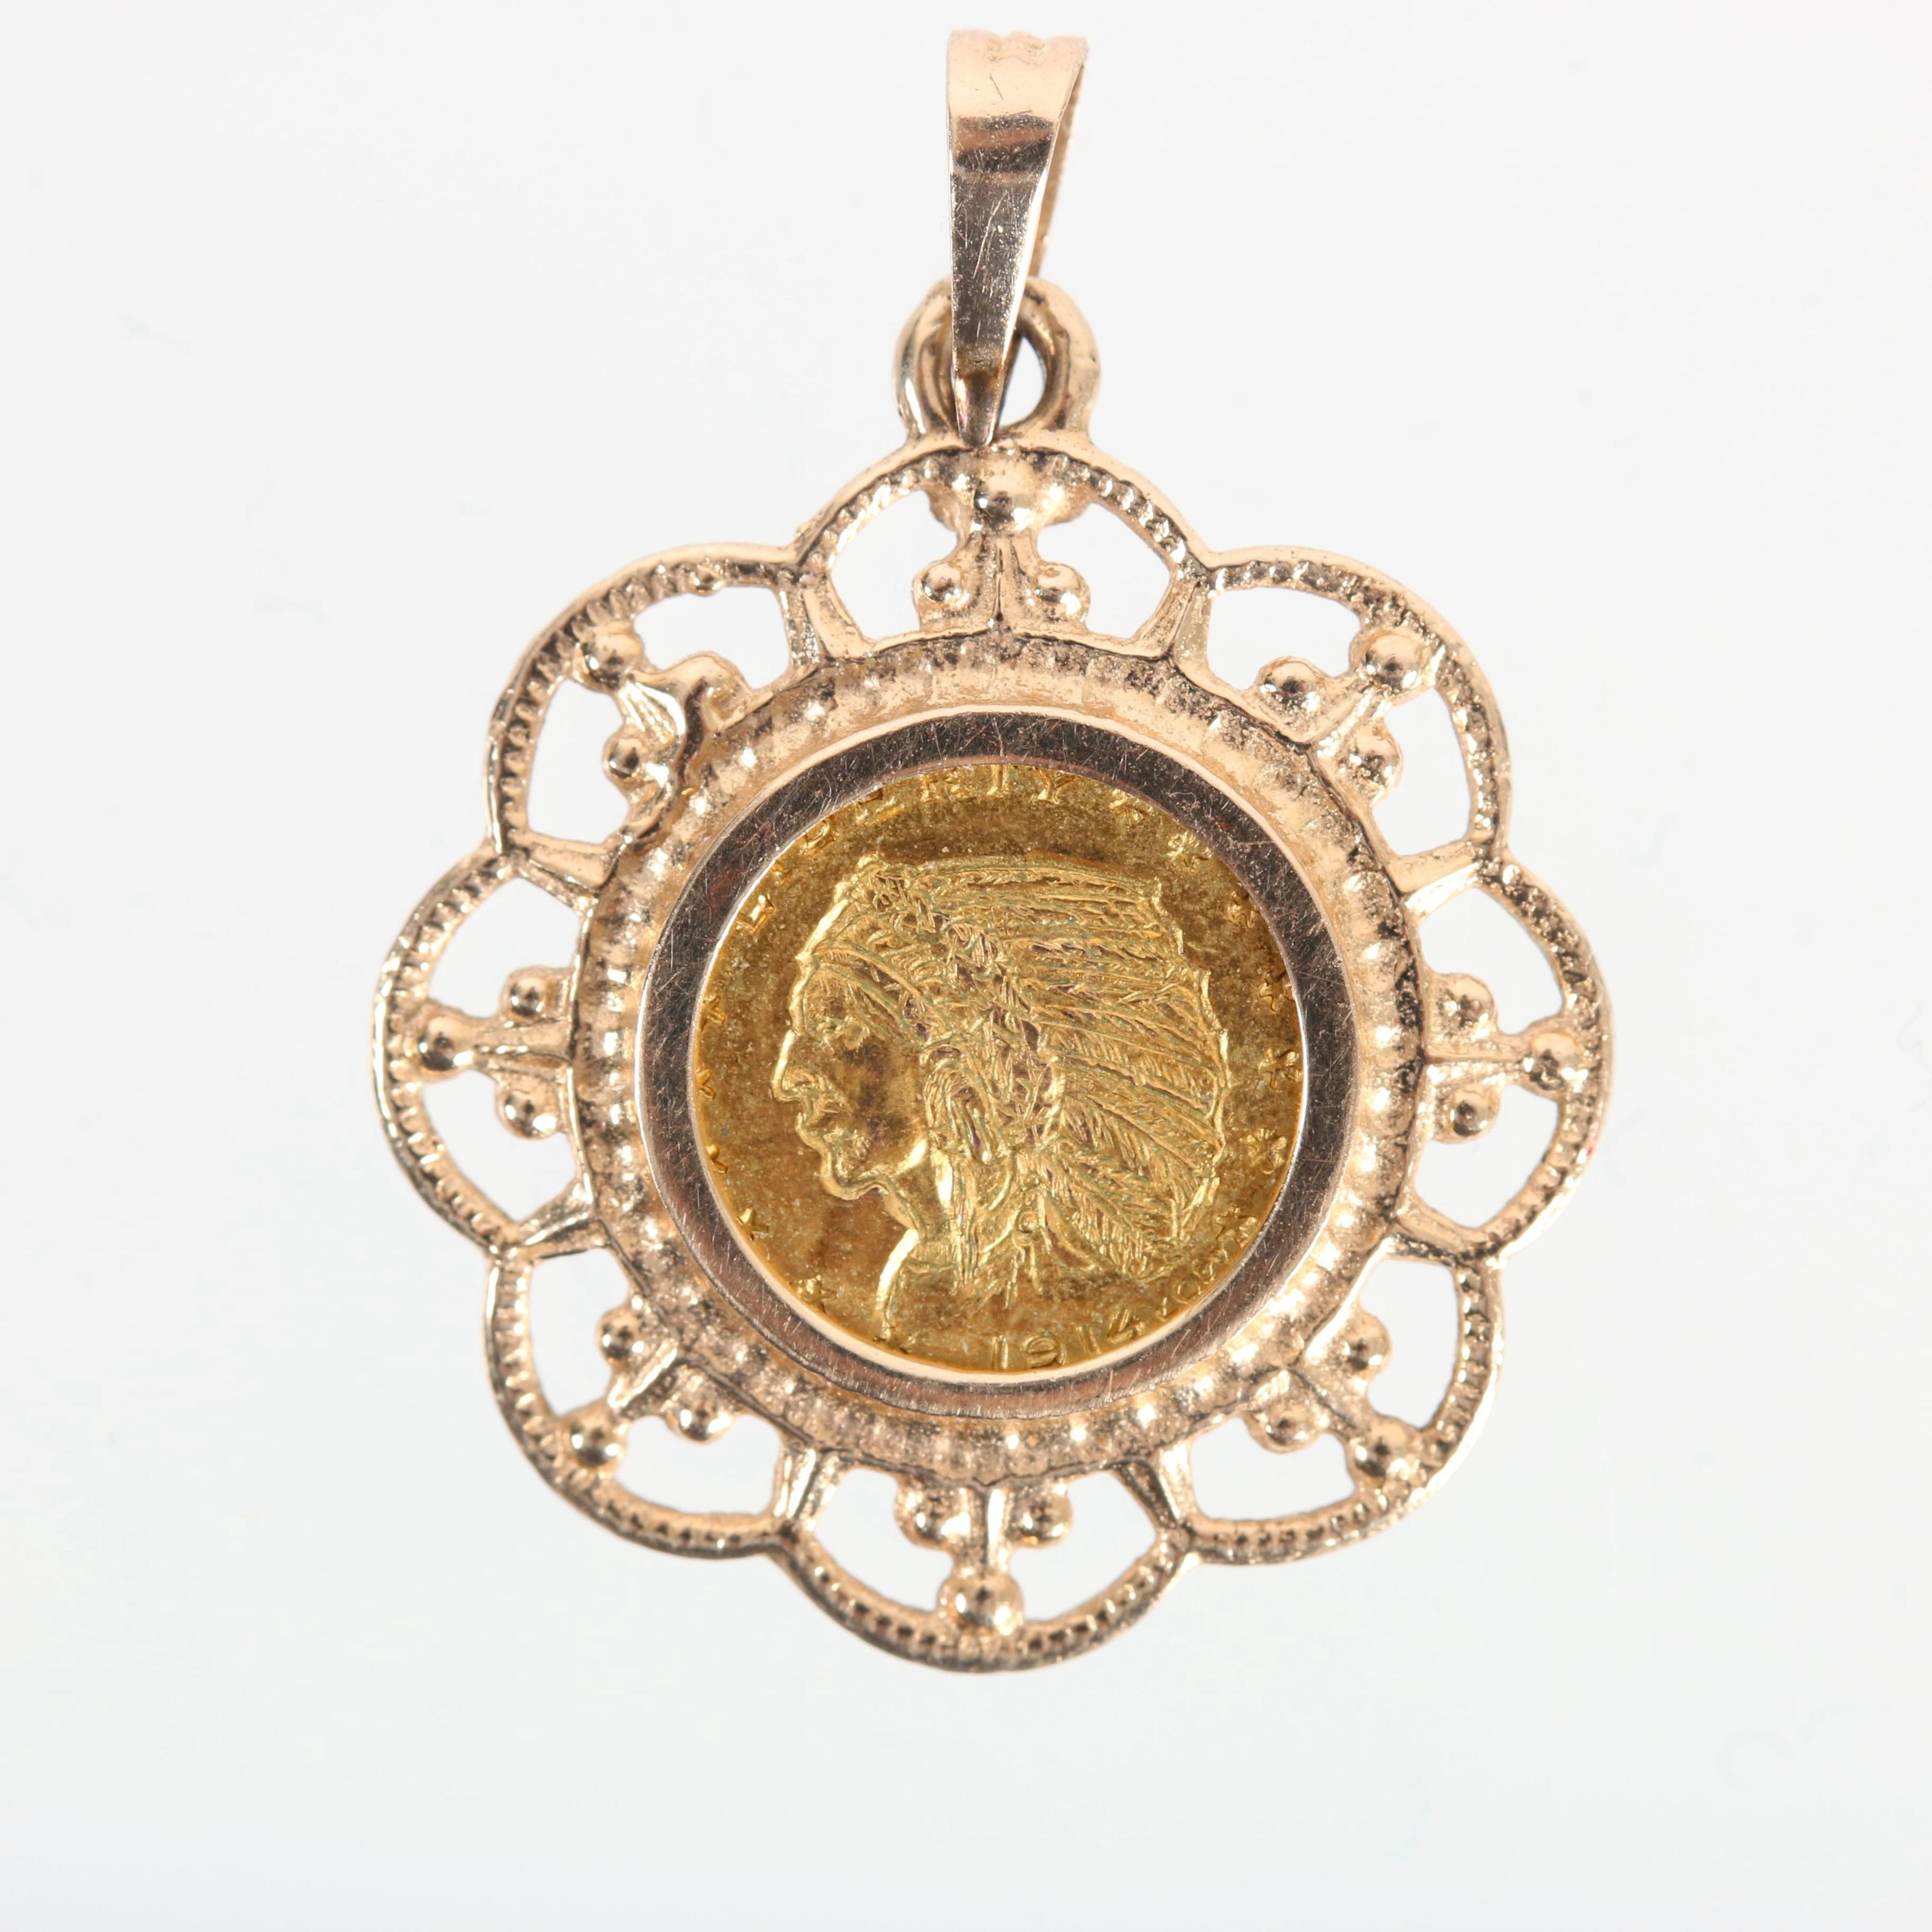 14K Yellow Gold Pendant with 10K Replica Indian Head $5 Gold Coin